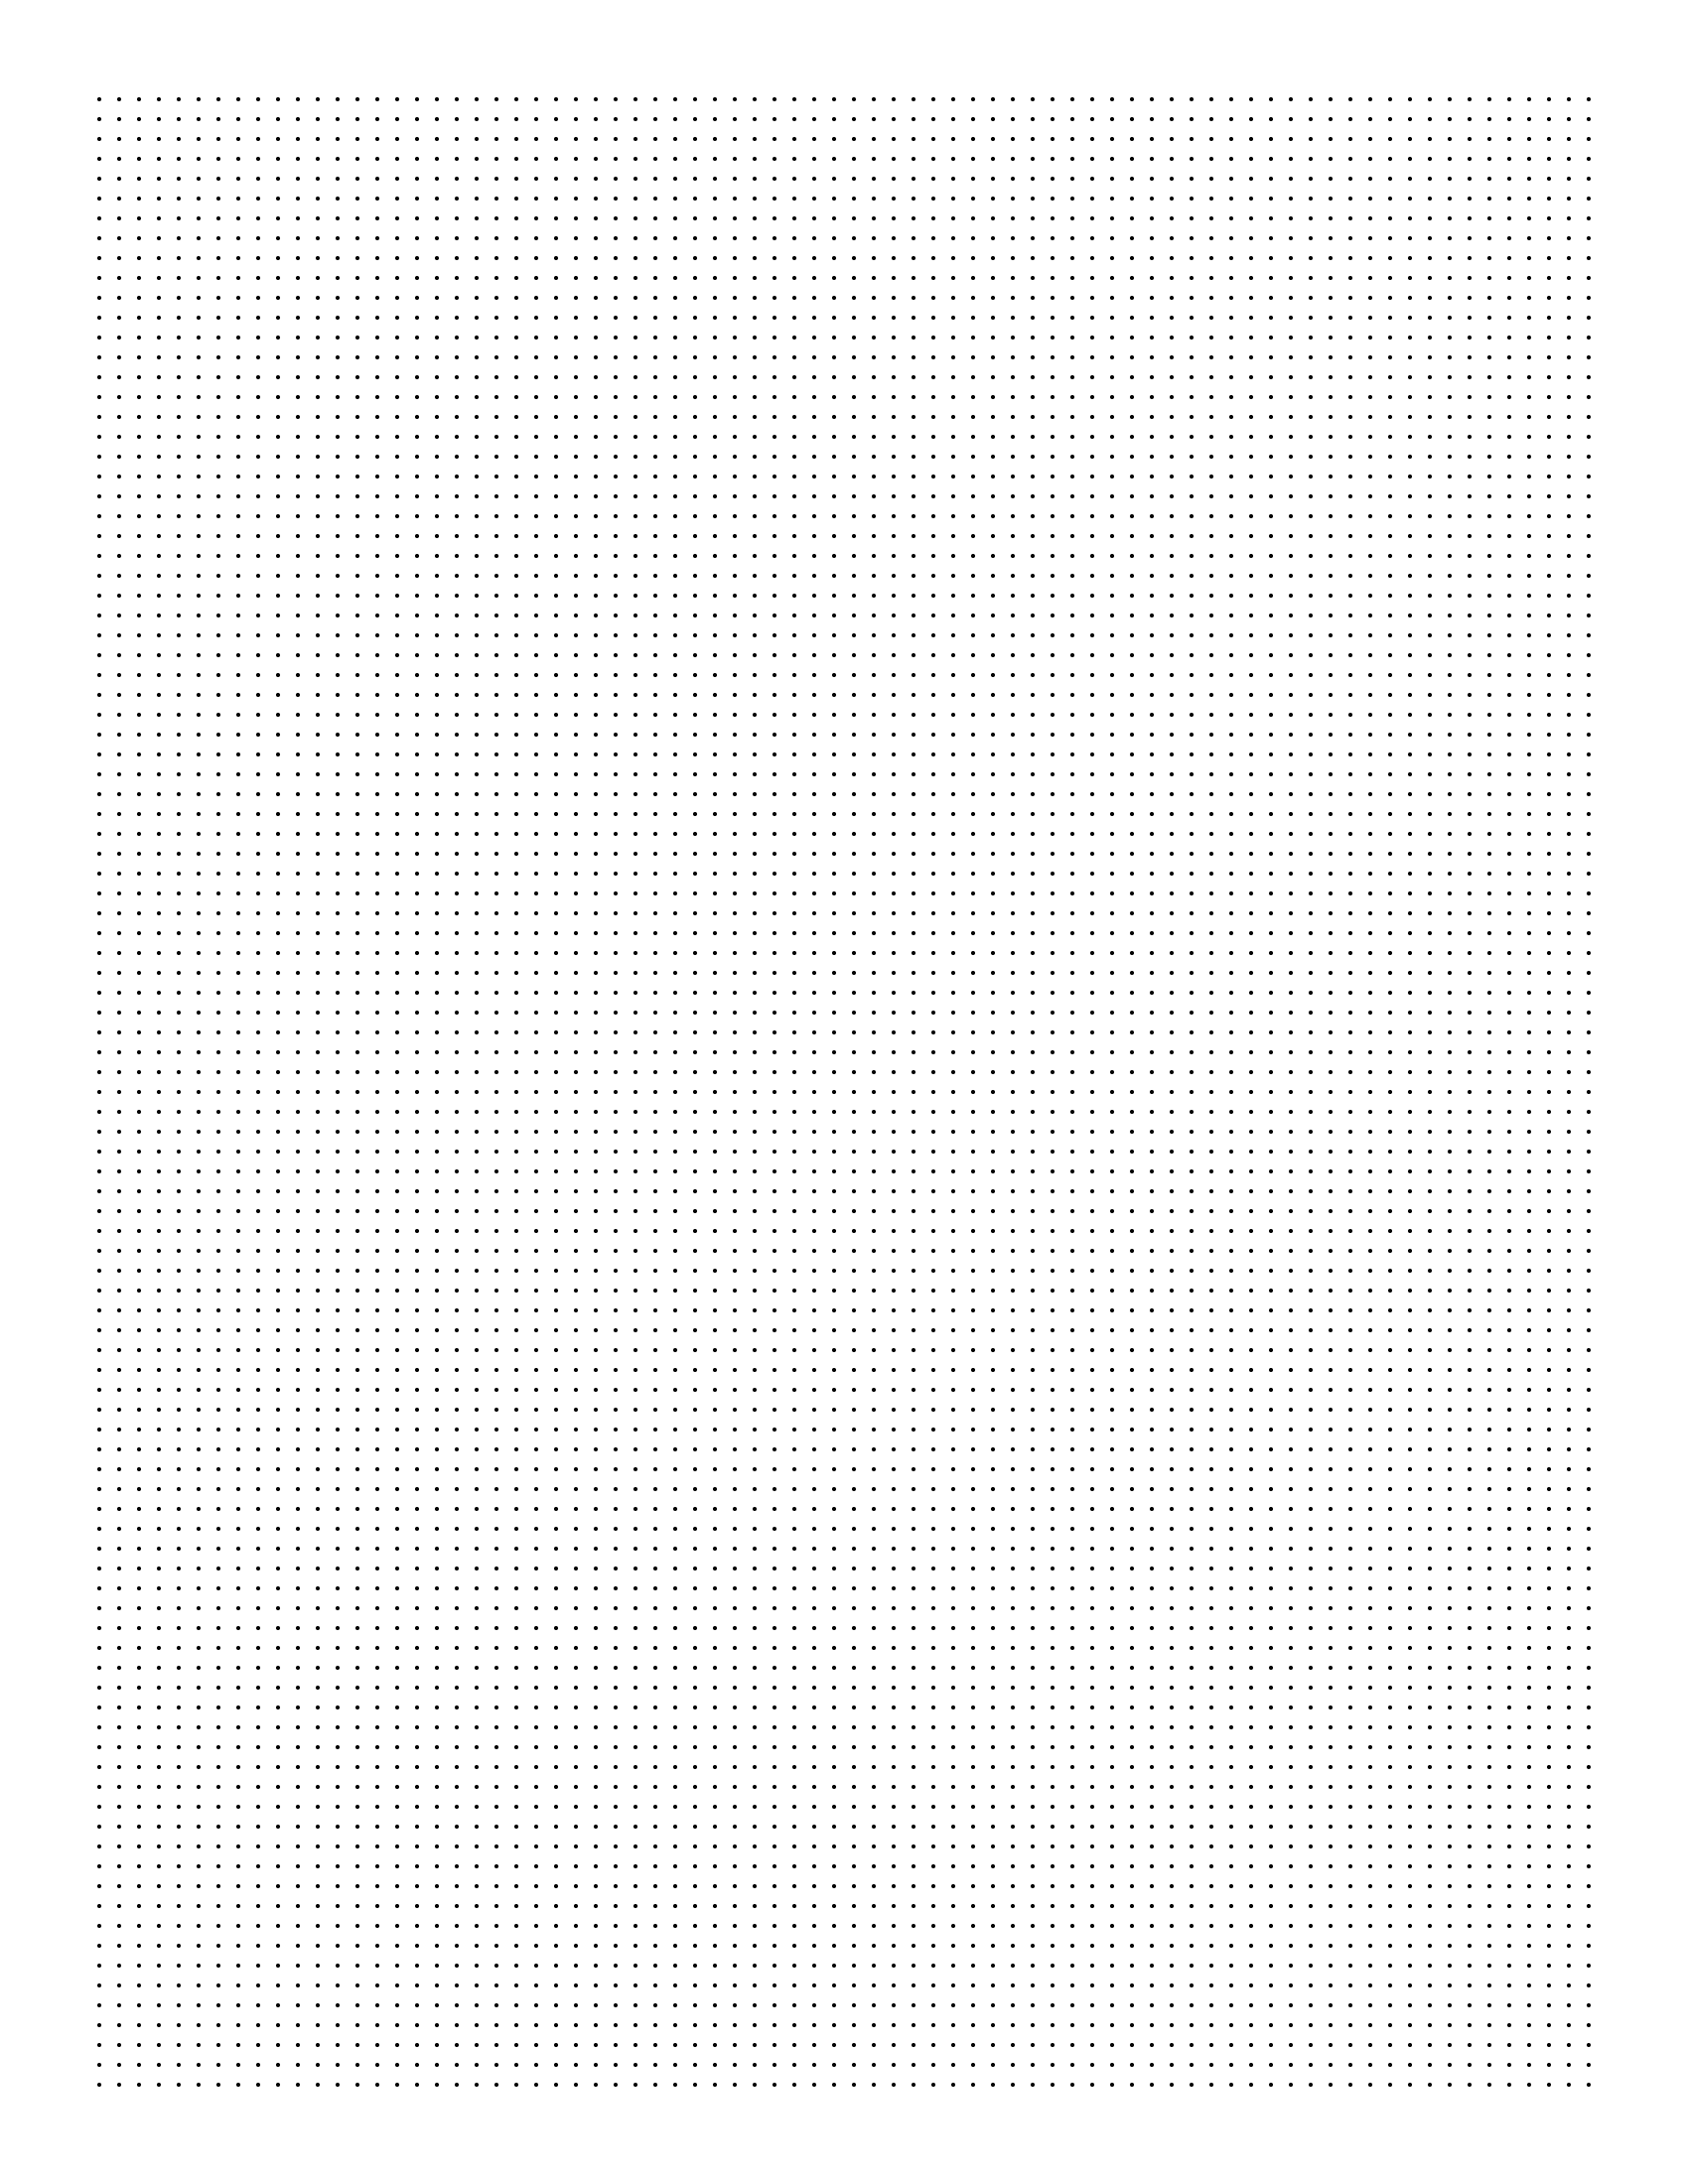 image relating to Free Printable Dot Grid Paper known as No cost On line Graph Paper / Sq. Dots